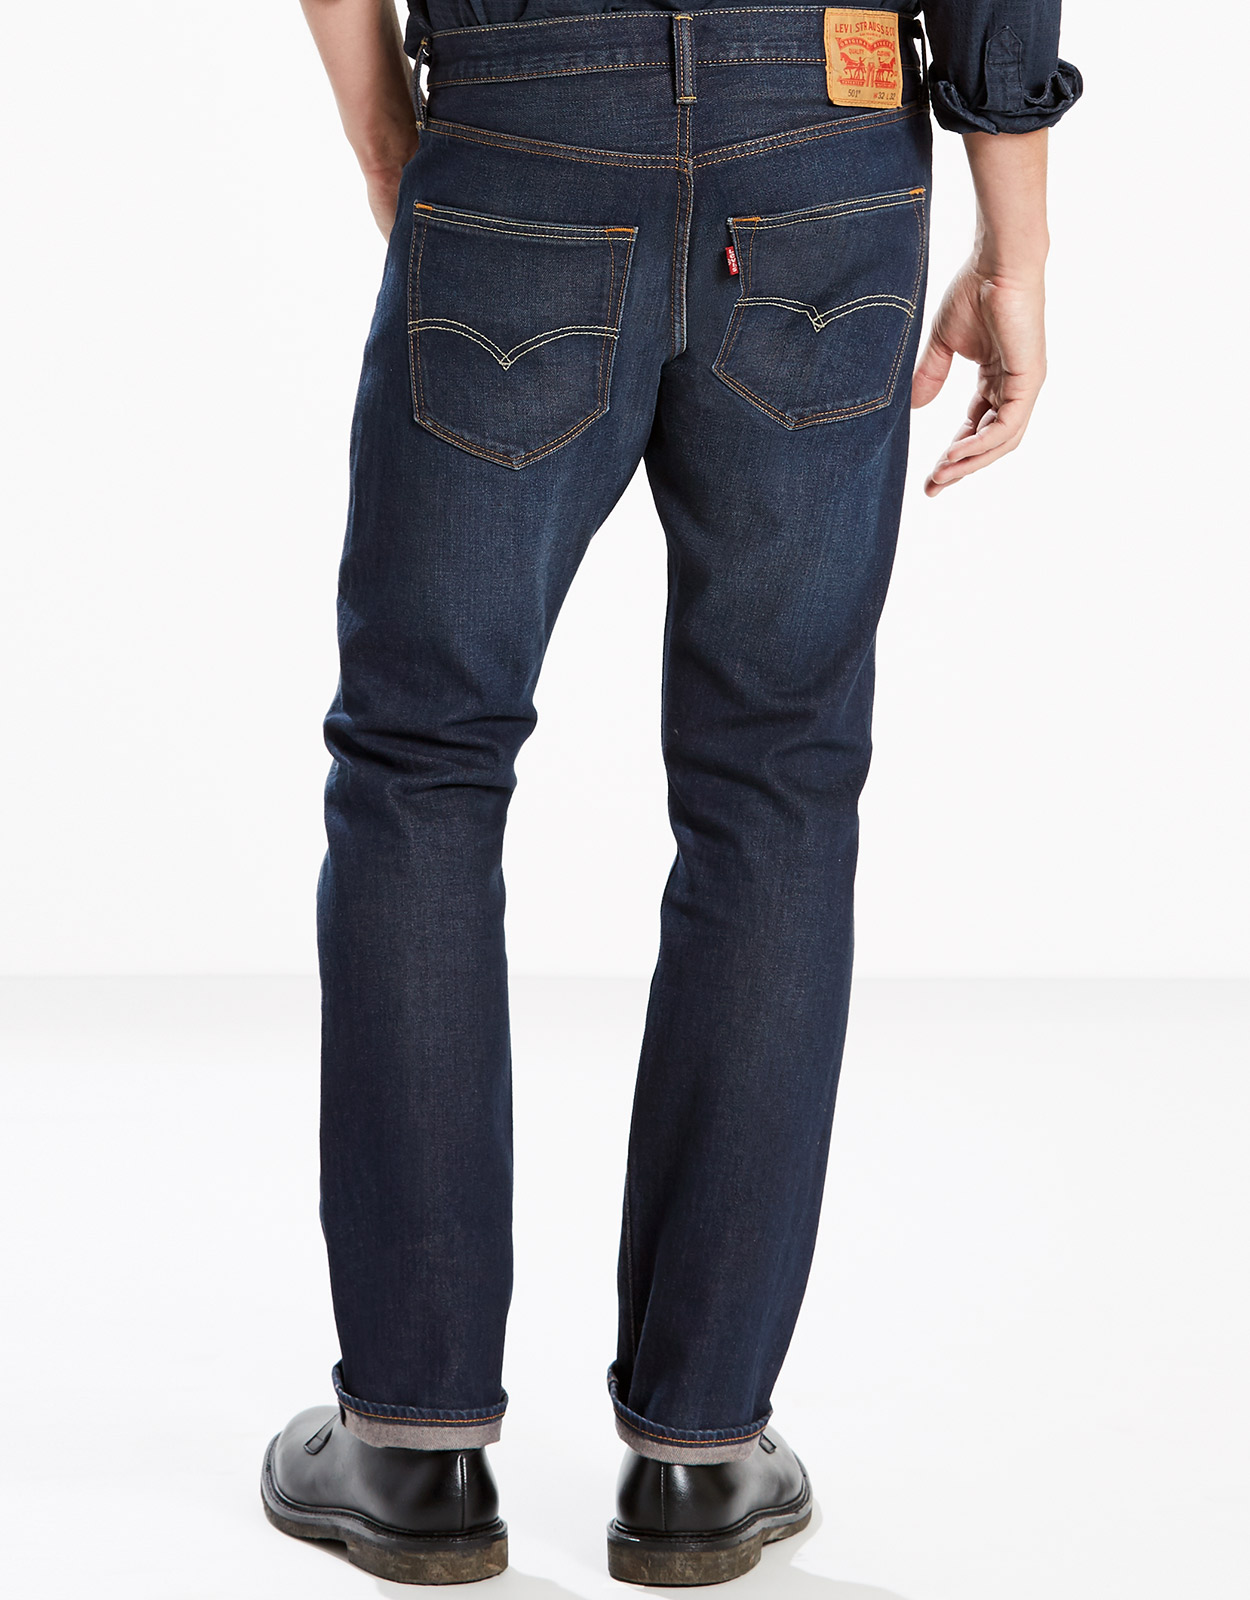 Levi's Men's 501 Original Stretch Mid Rise Regular Fit Straight Leg Jeans - Anchor (Closeout)